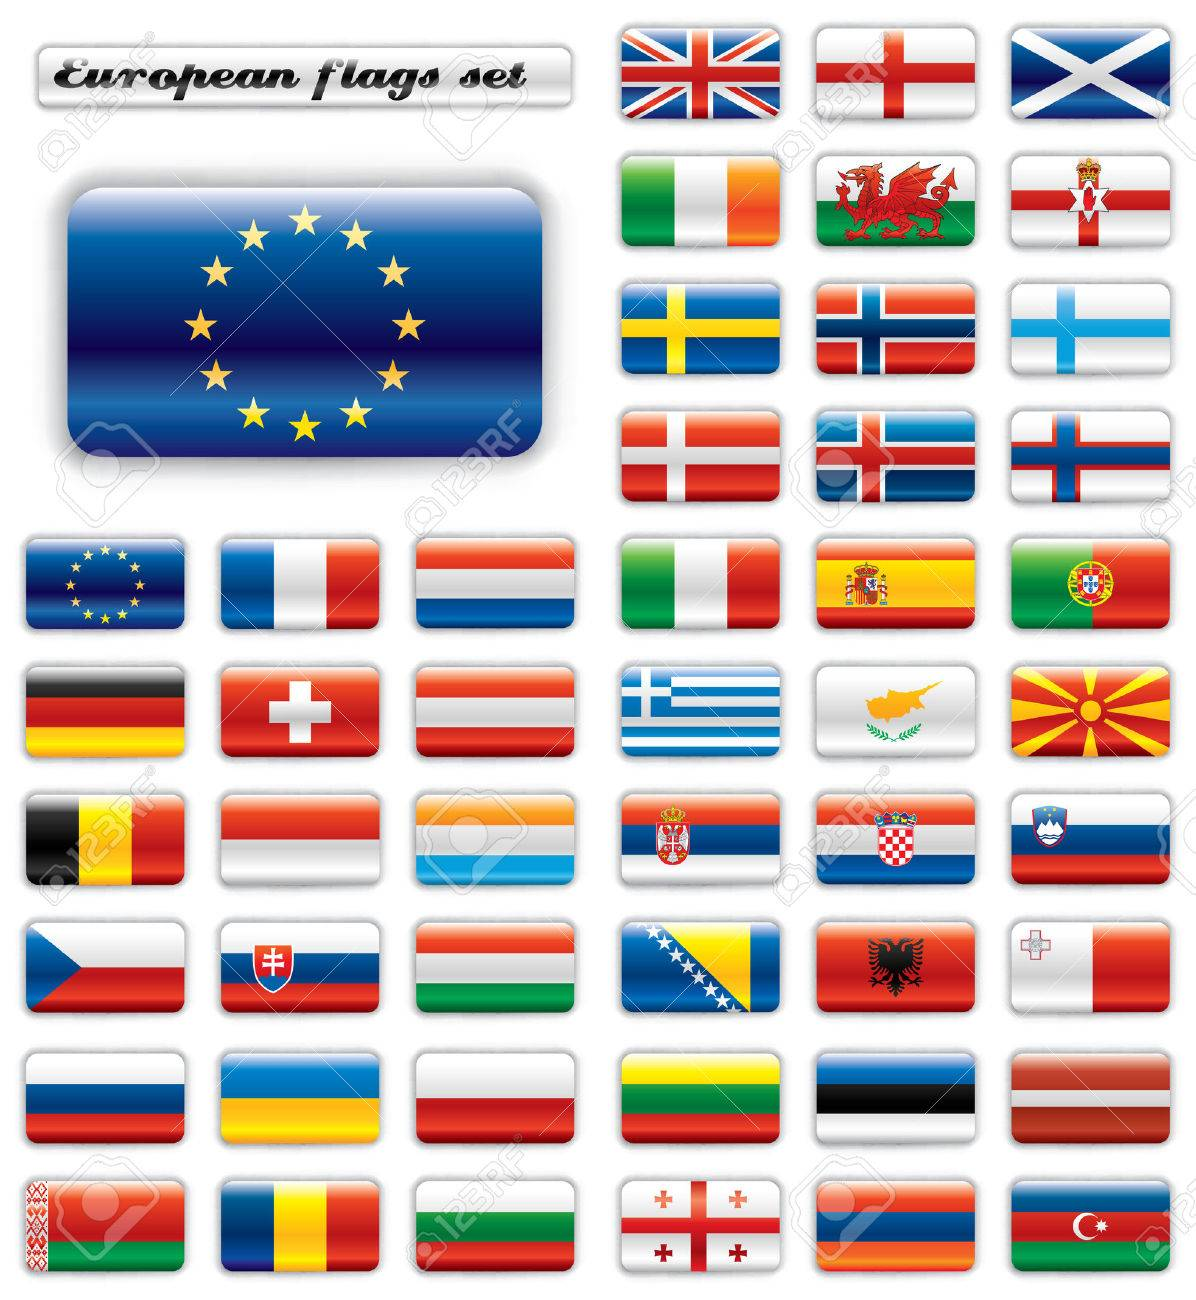 Extra Glossy Button Flags. Big European